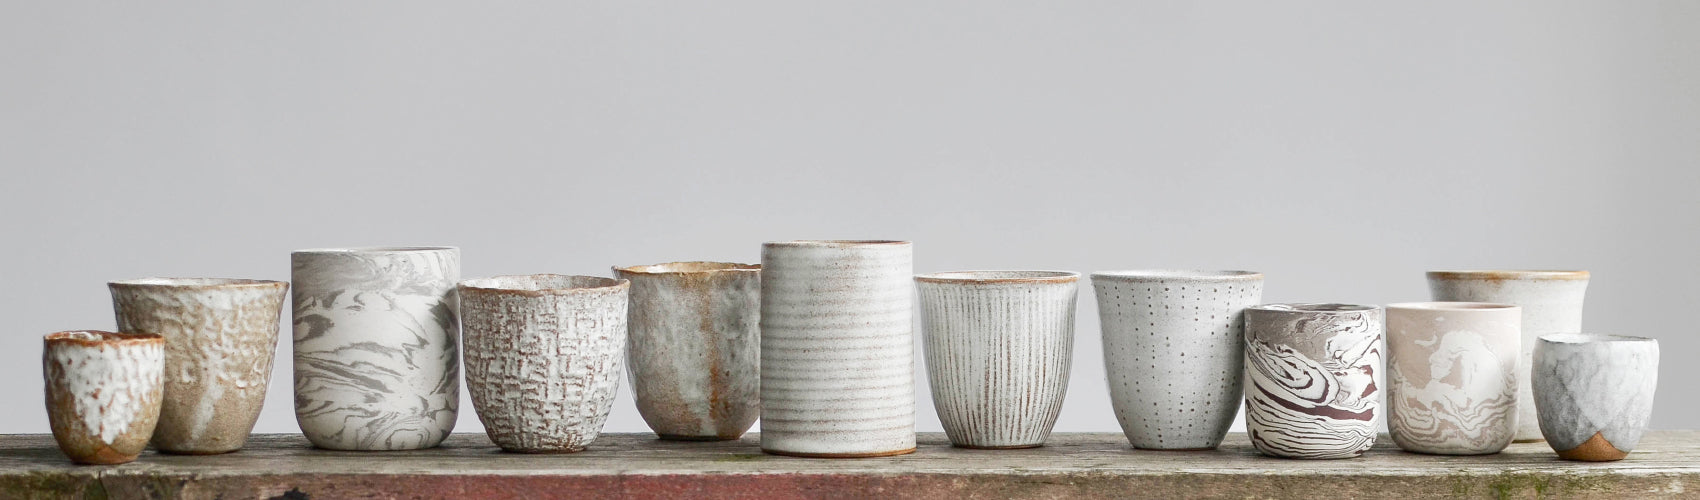 Nom Living Stoneware Mugs and Cups Collection Header Image